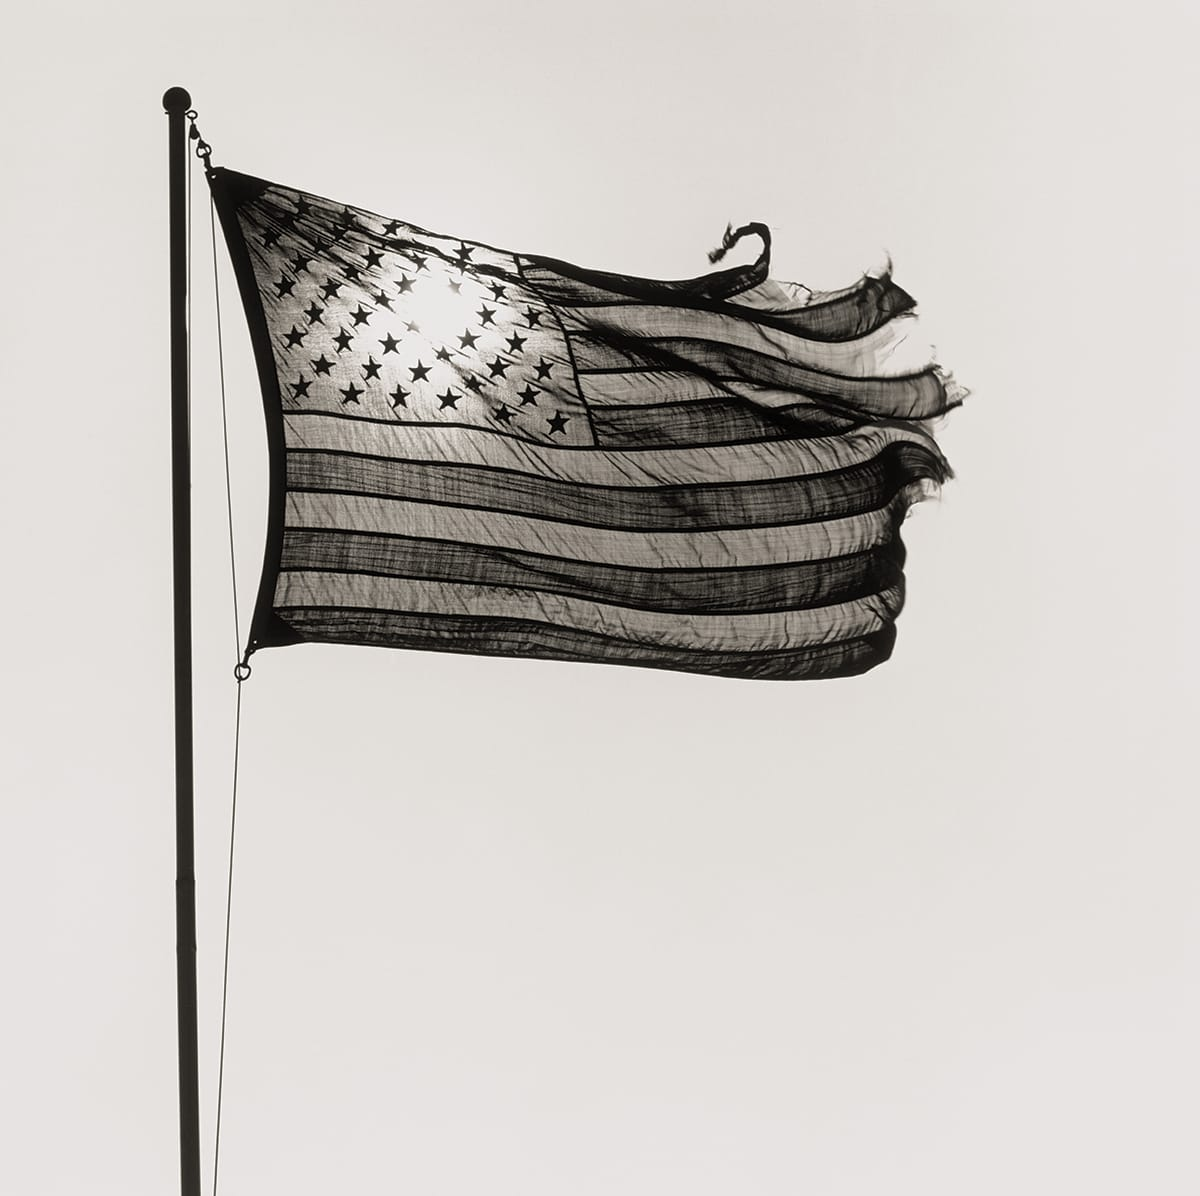 American Flag, 1977 by Robert Mapplethorpe.